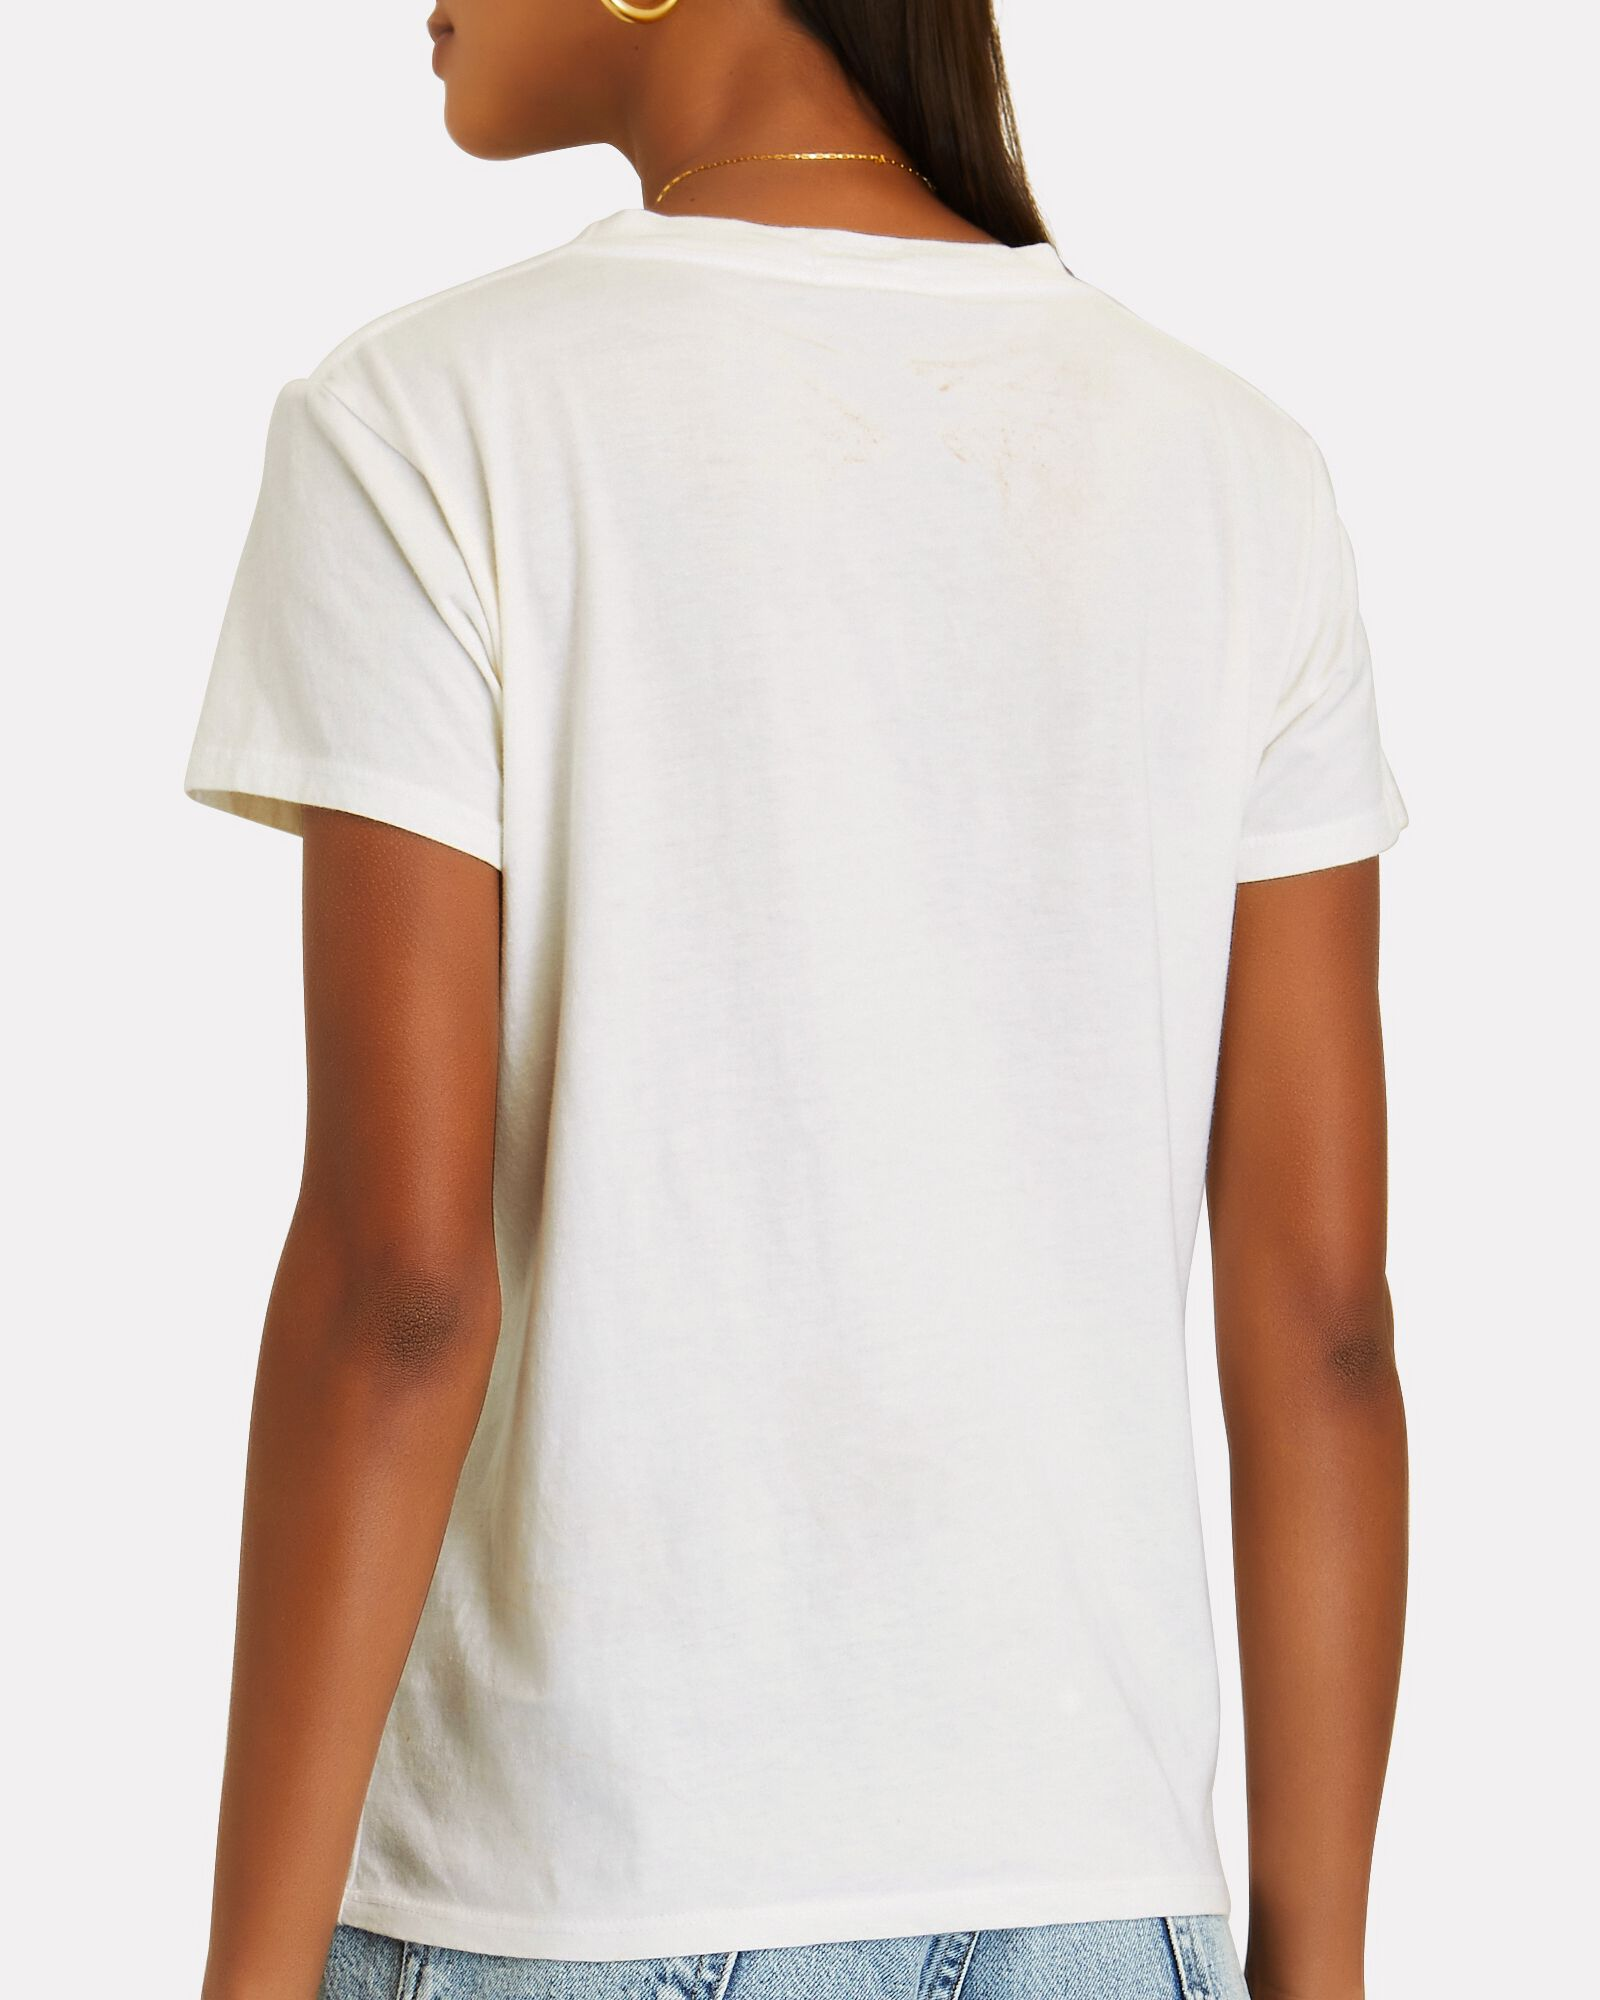 The Boxy Goodie Goodie T-Shirt, IVORY, hi-res